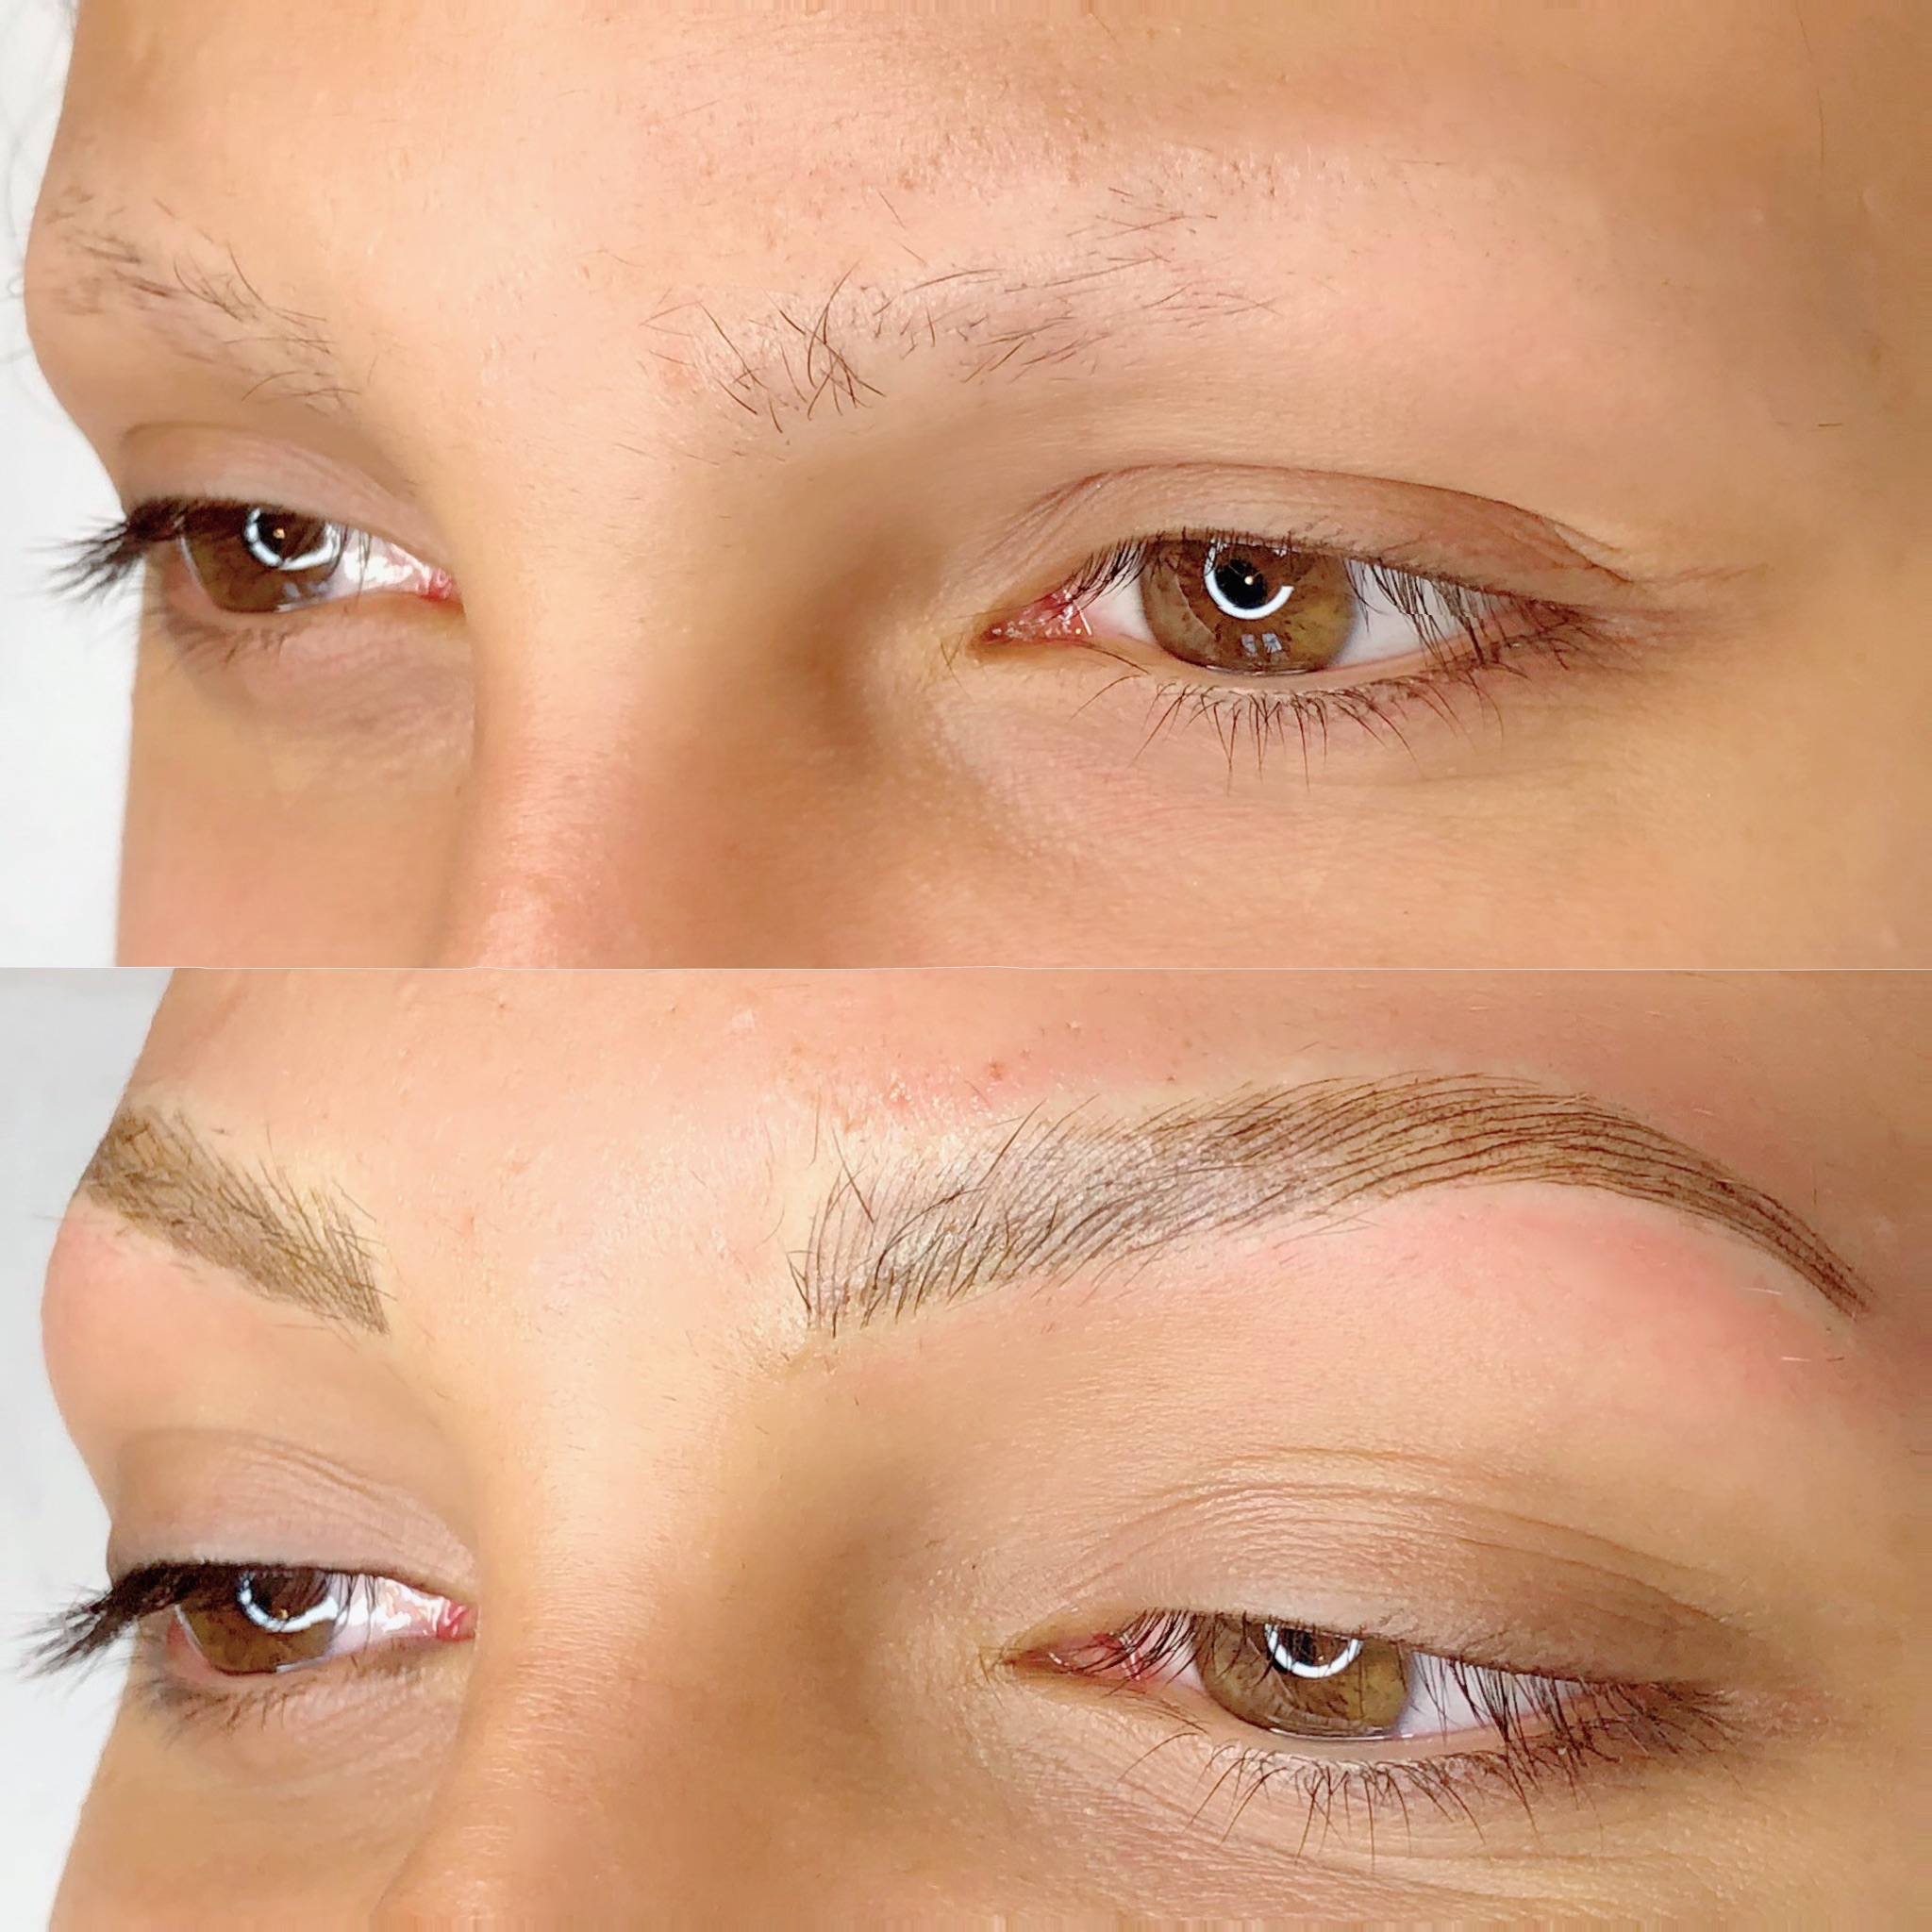 MICROBLADING + SHADING - The process of implanting pigments into the eyebrow to create the appearance of individual brow hairs and develop a more defined and fuller brow.Microblading starts at $500.